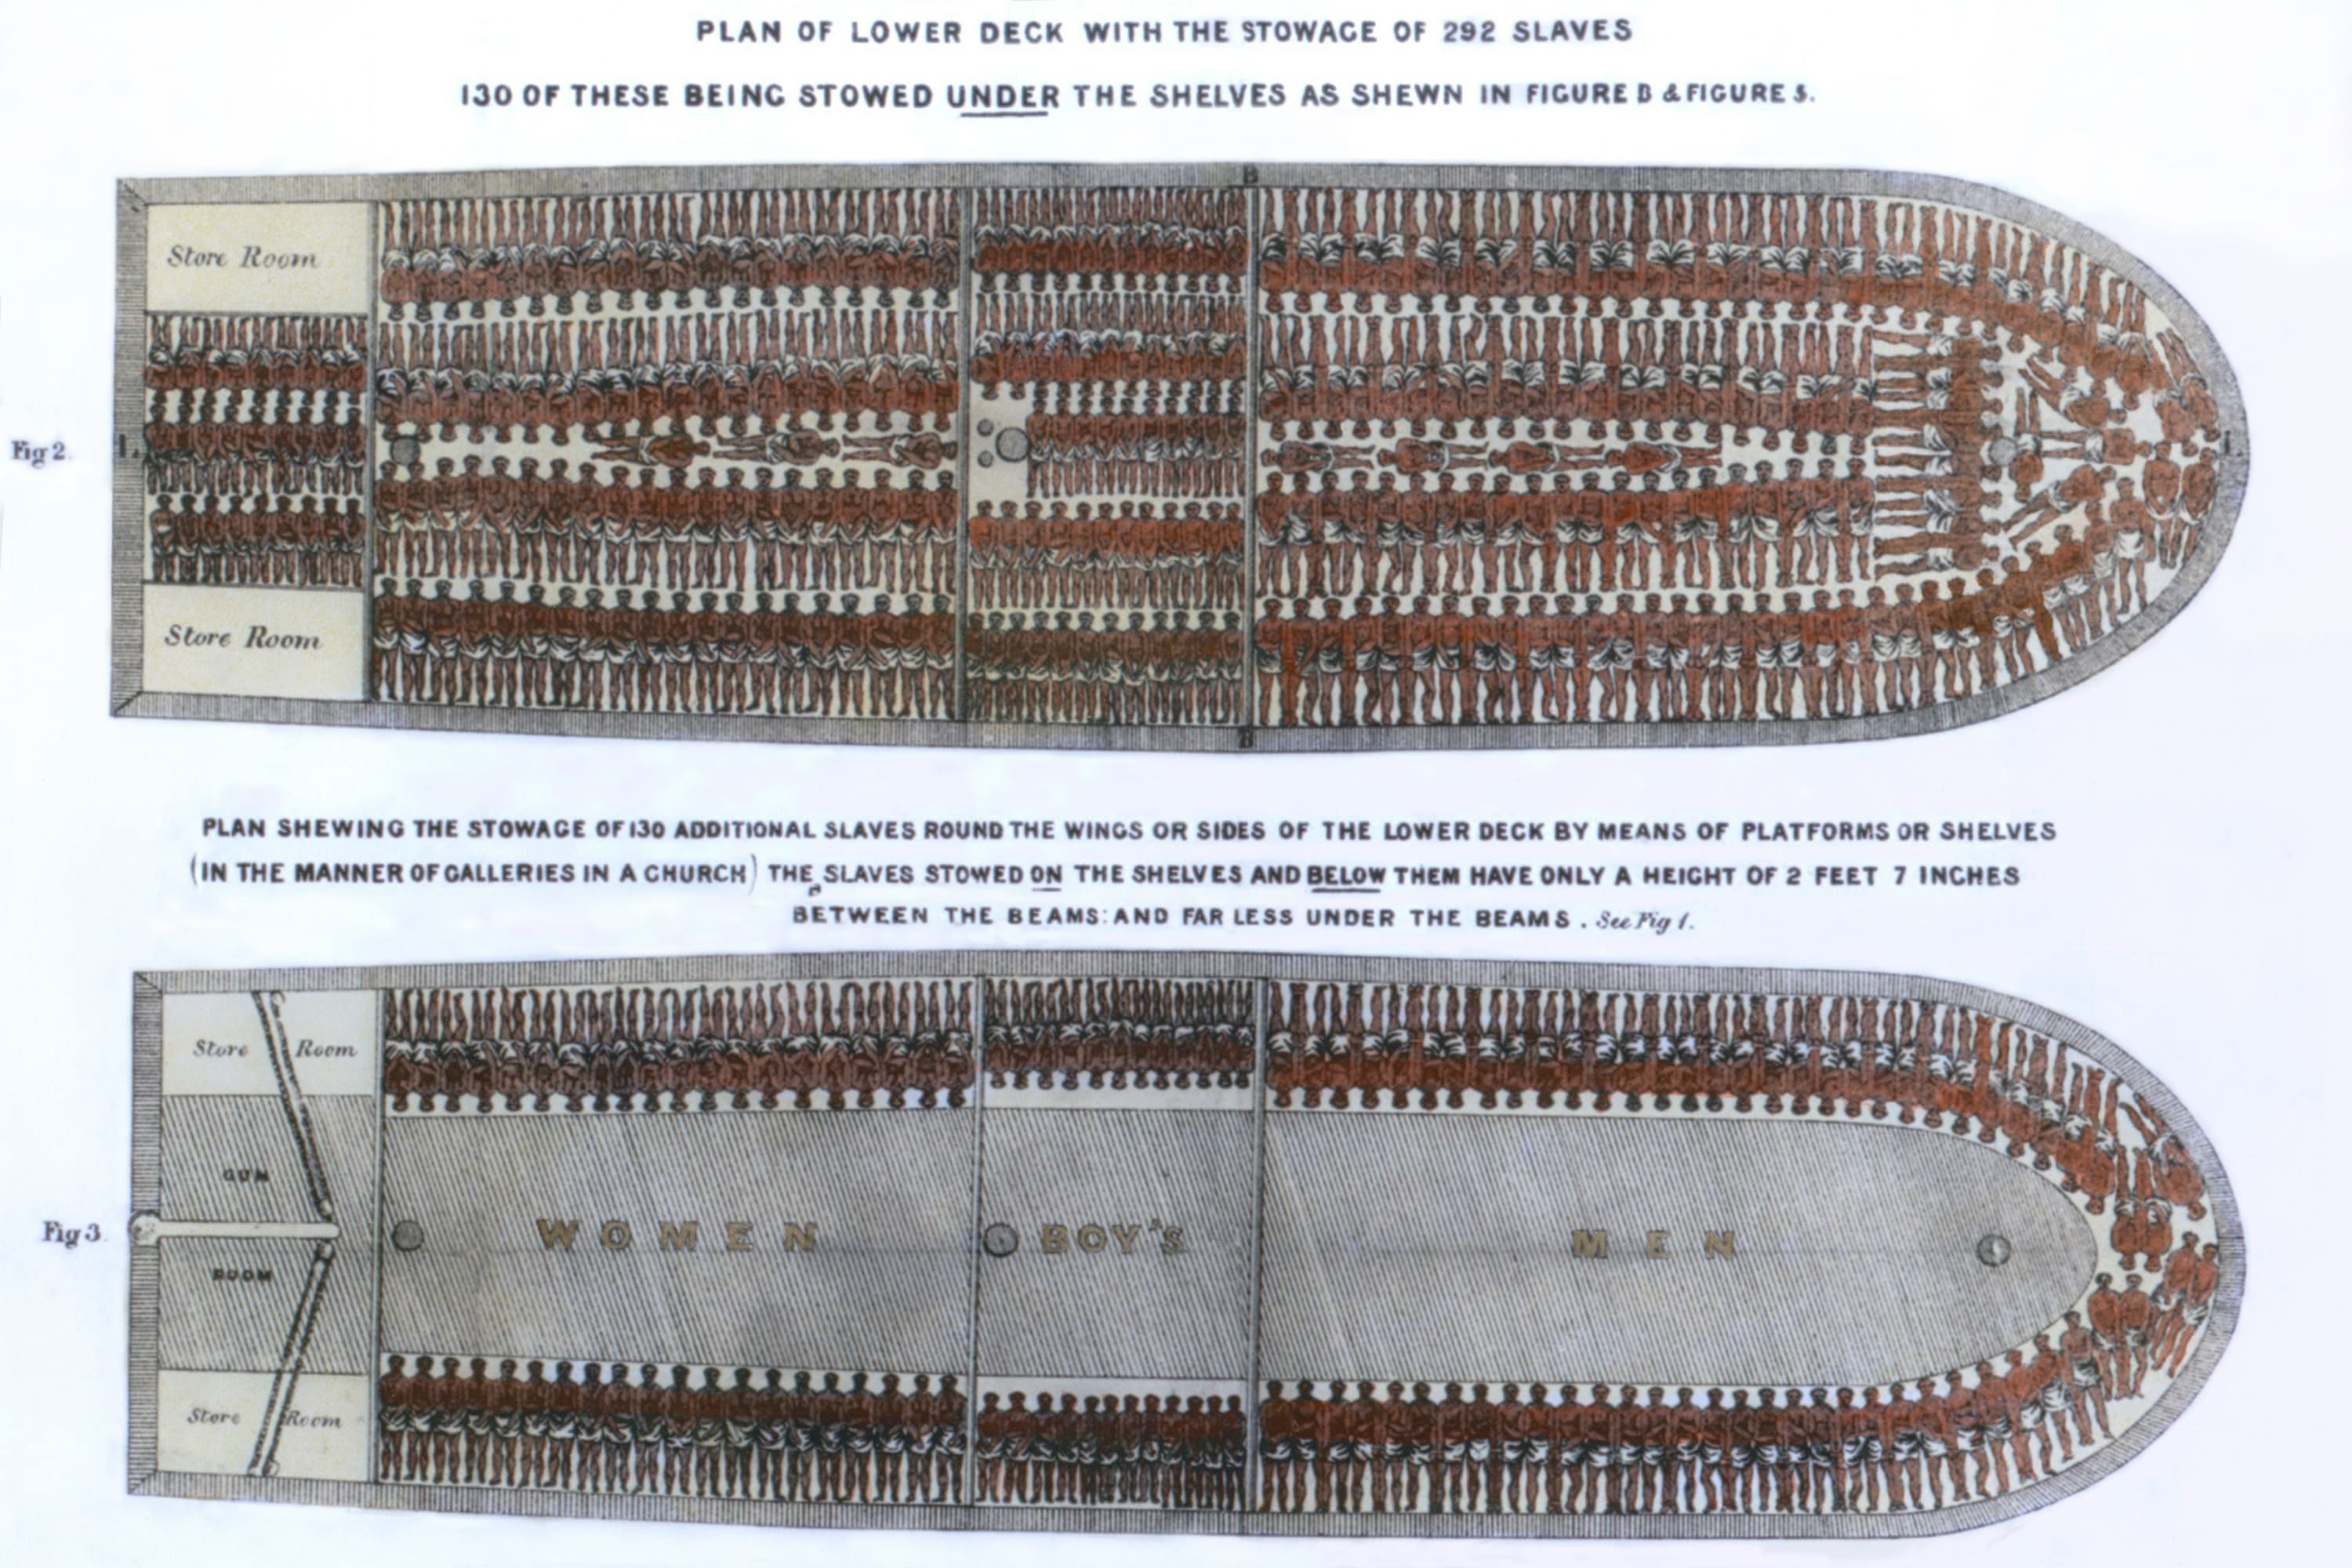 Brooks slave ship illustration